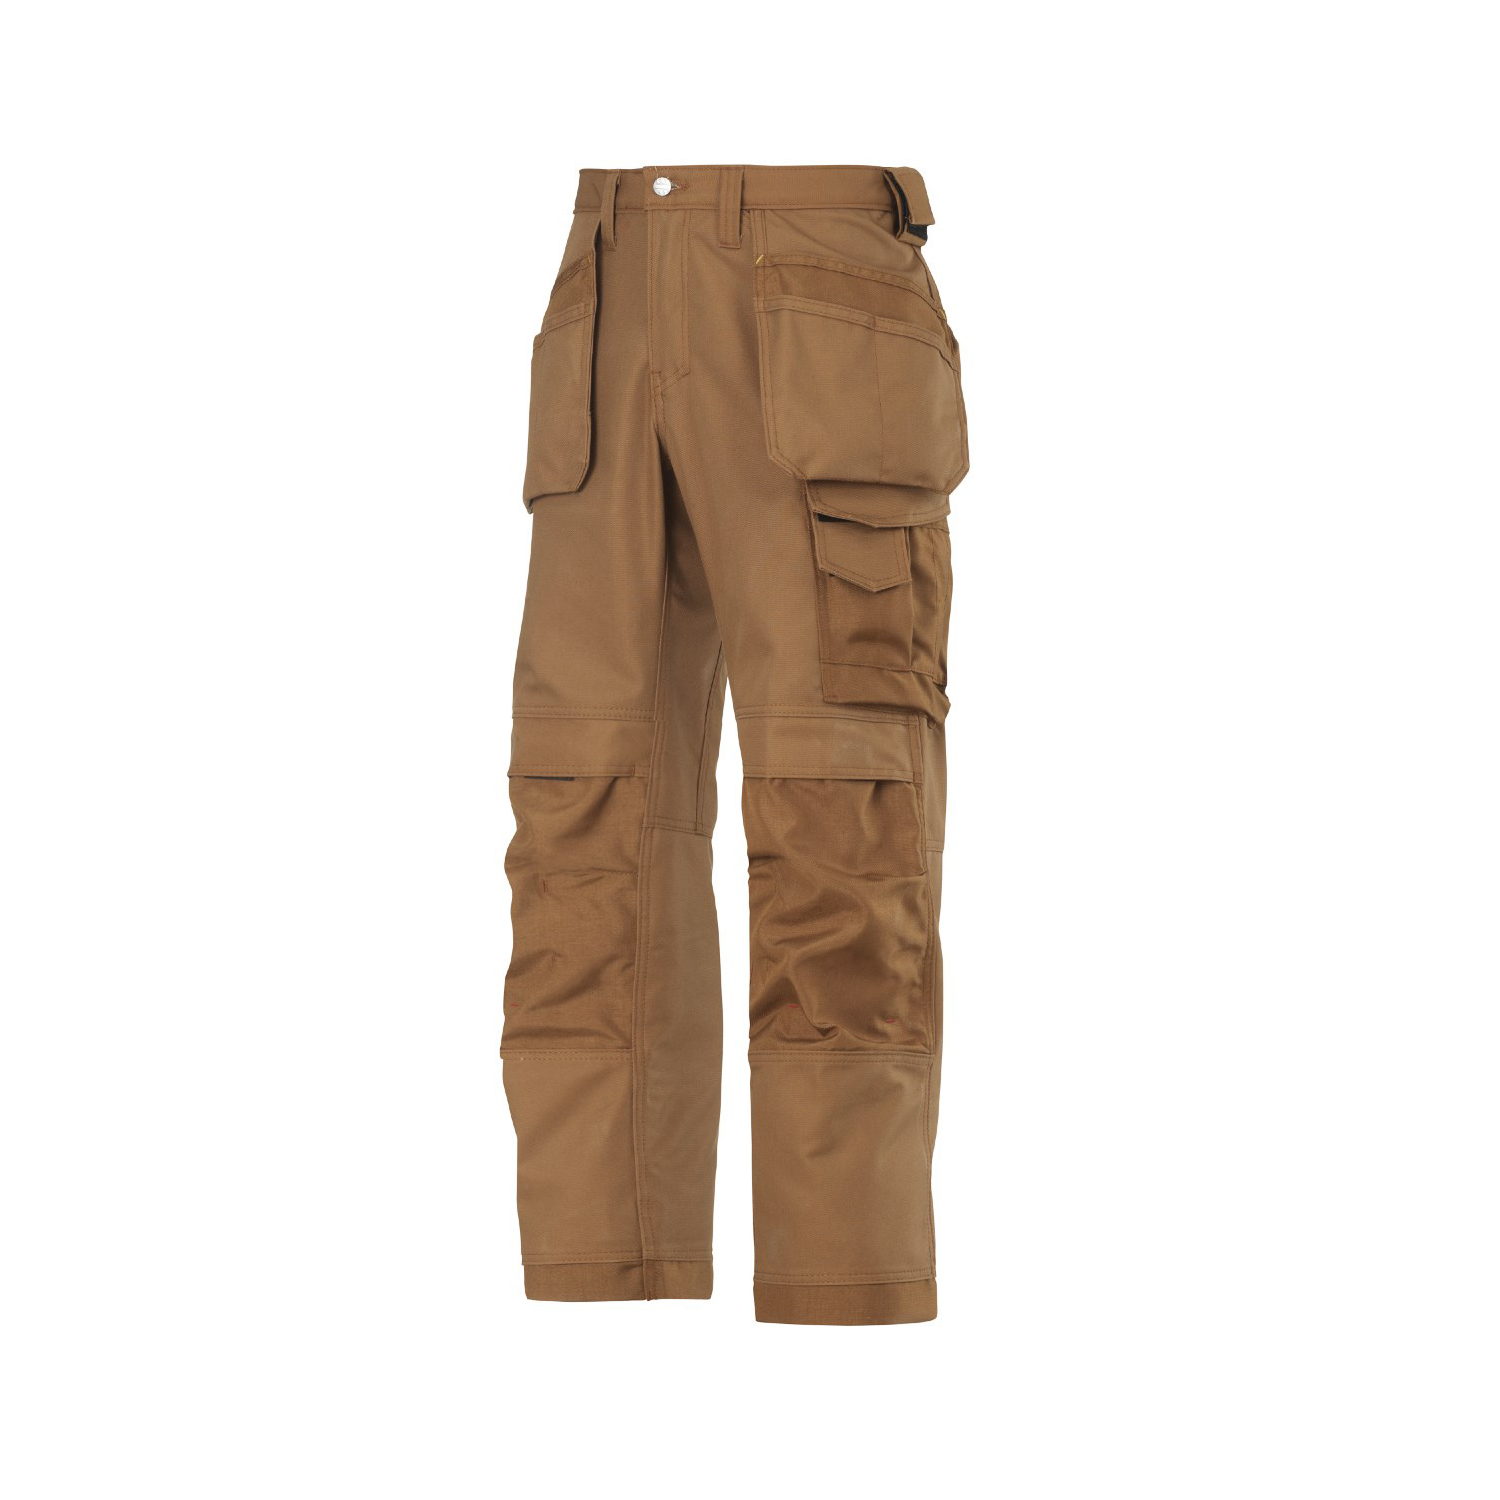 WorkTrousers